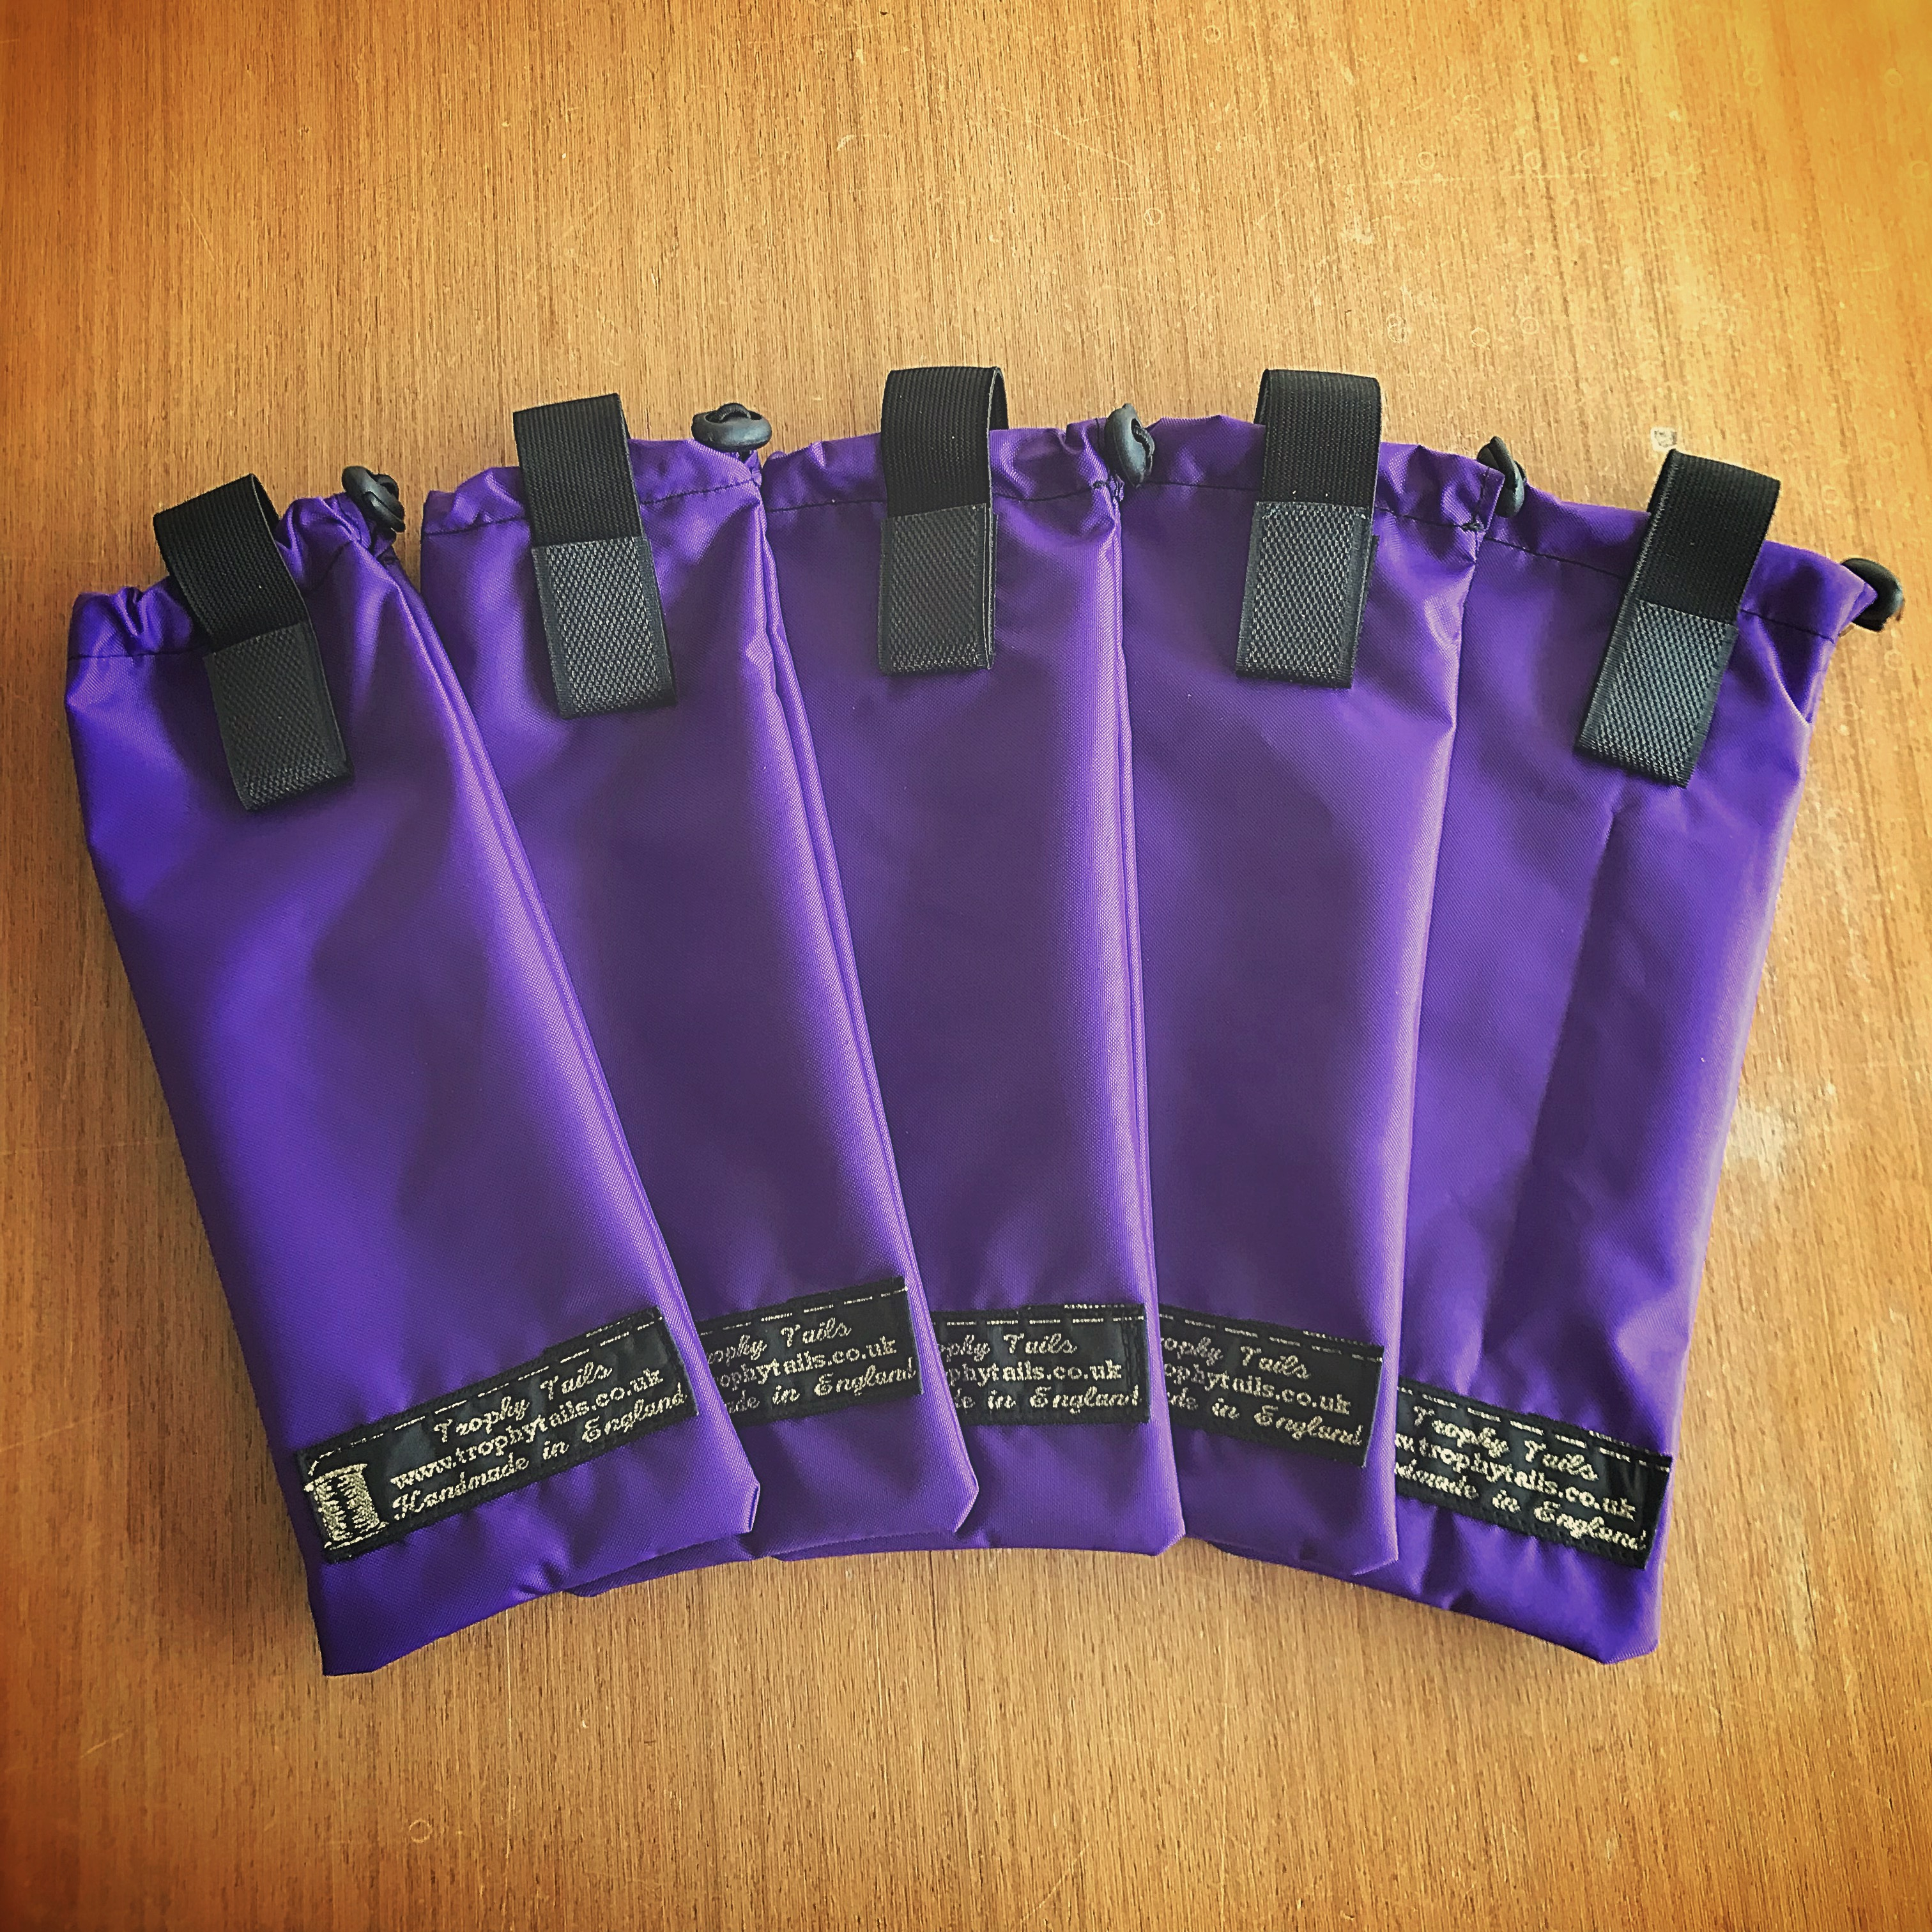 Heavy Duty Toggle Mane Bags Set Of 6 - Purple